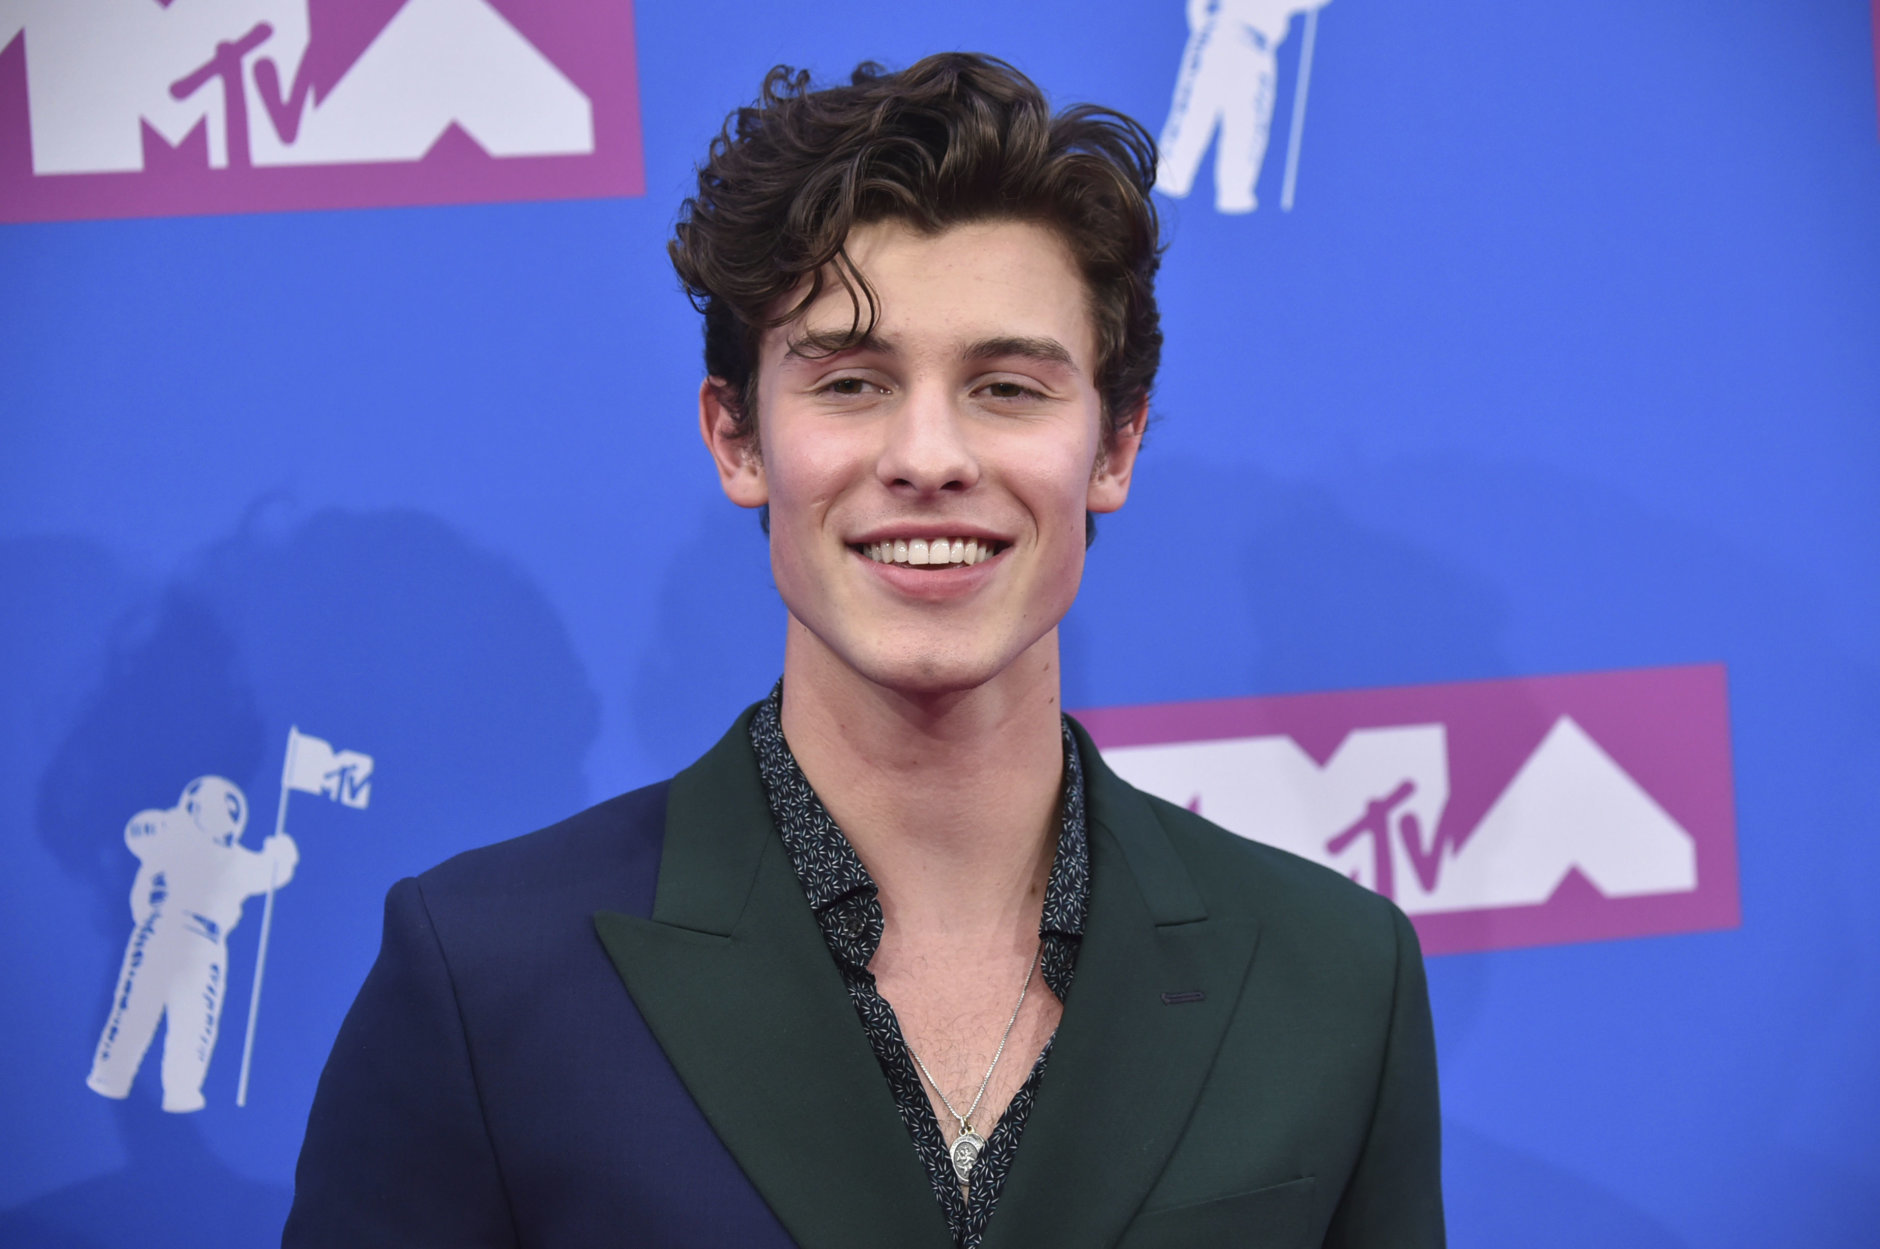 Shawn Mendes arrives at the MTV Video Music Awards at Radio City Music Hall on Monday, Aug. 20, 2018, in New York. (Photo by Evan Agostini/Invision/AP)